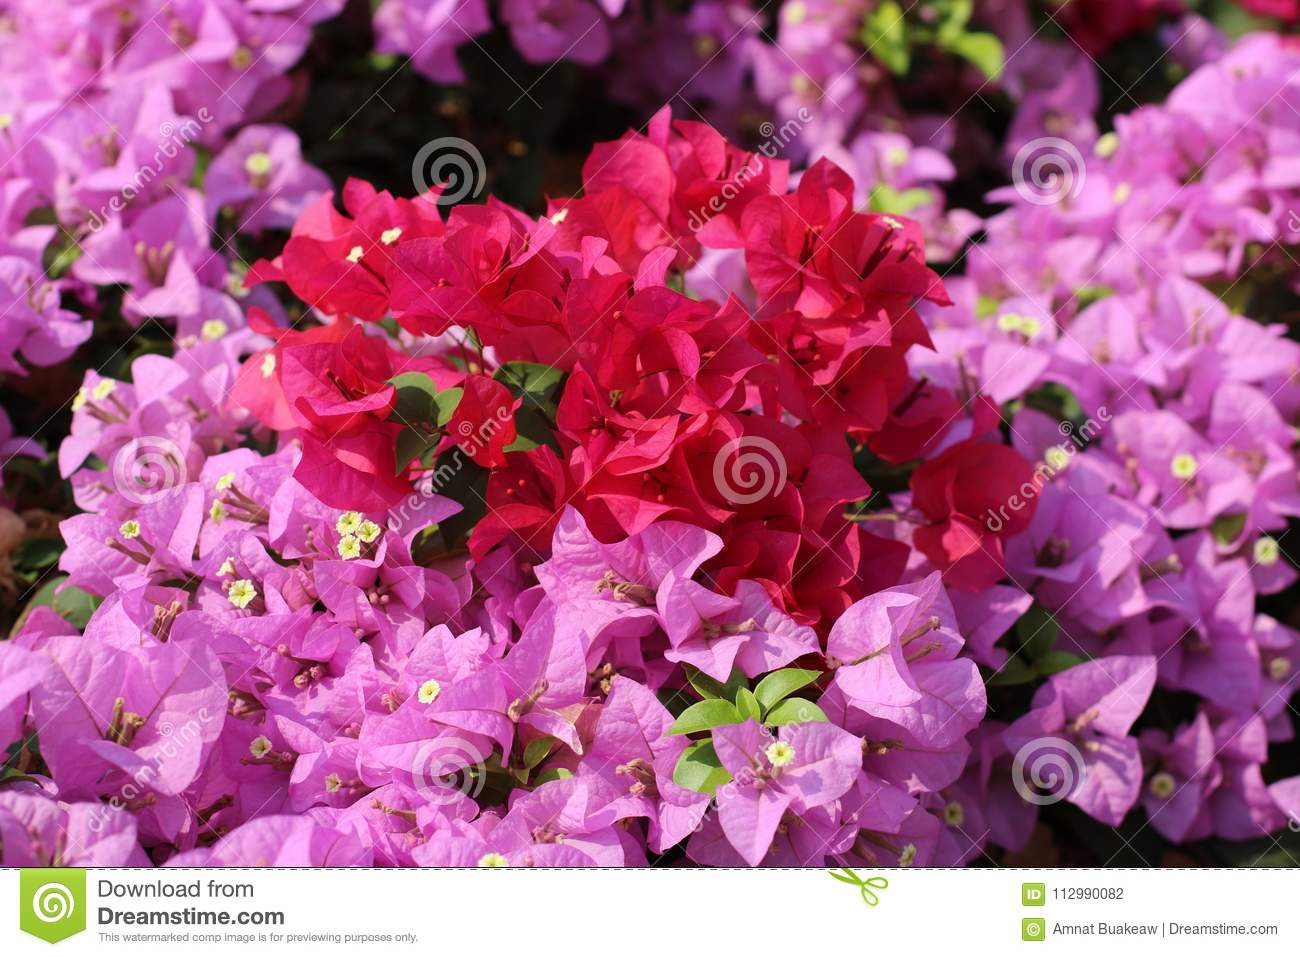 Bougainvillea flower for background pink purple red selective focus